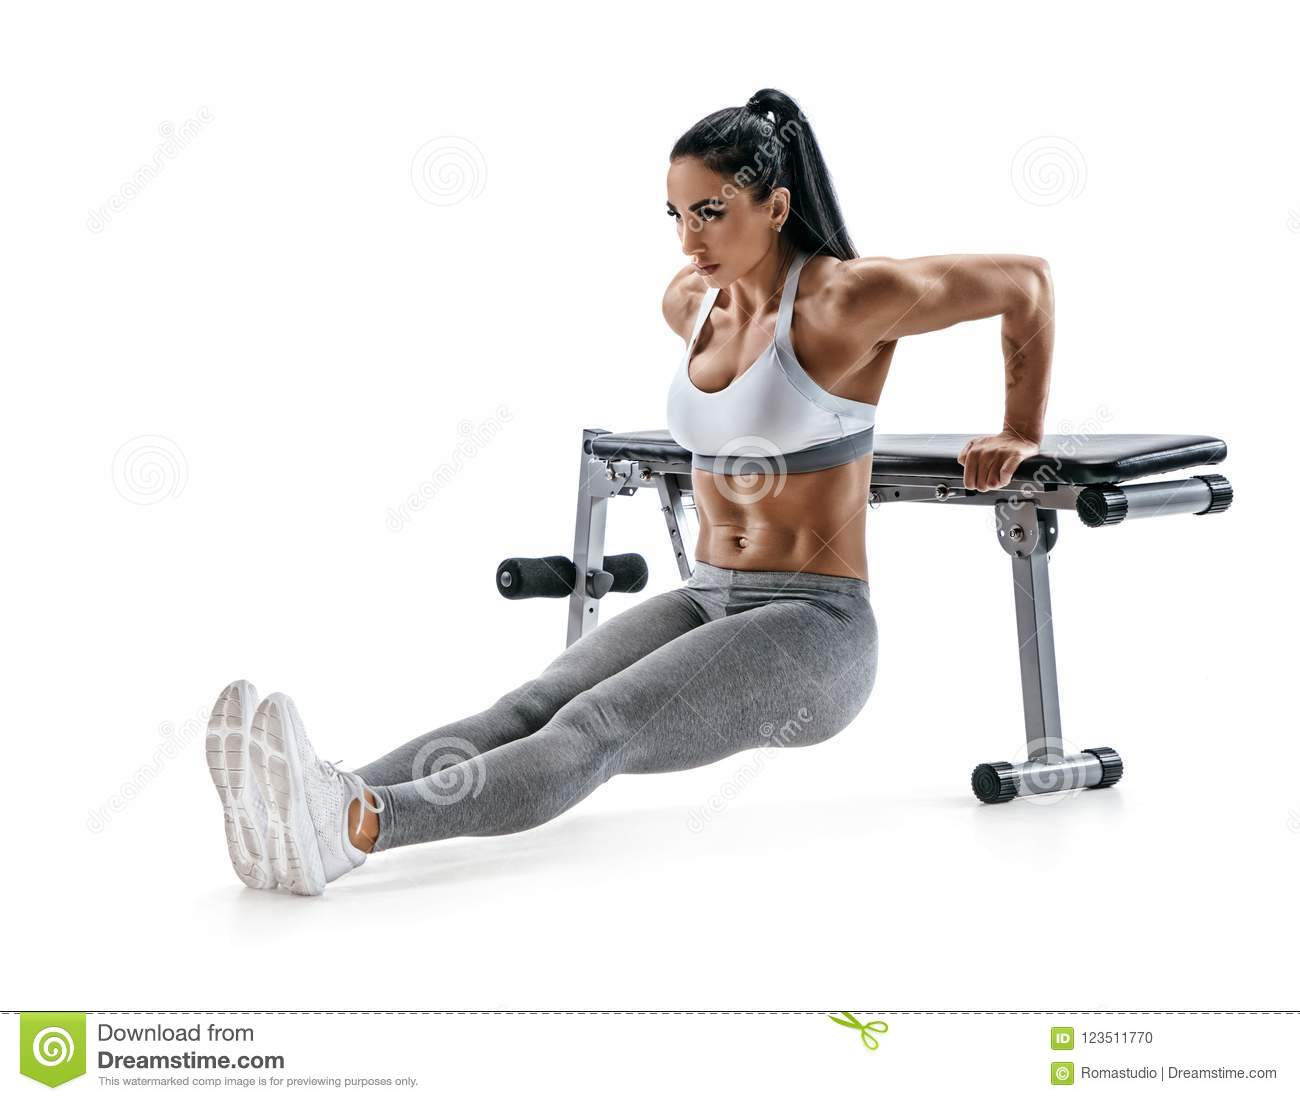 Strong woman working out arms muscles doing triceps dips using bench.